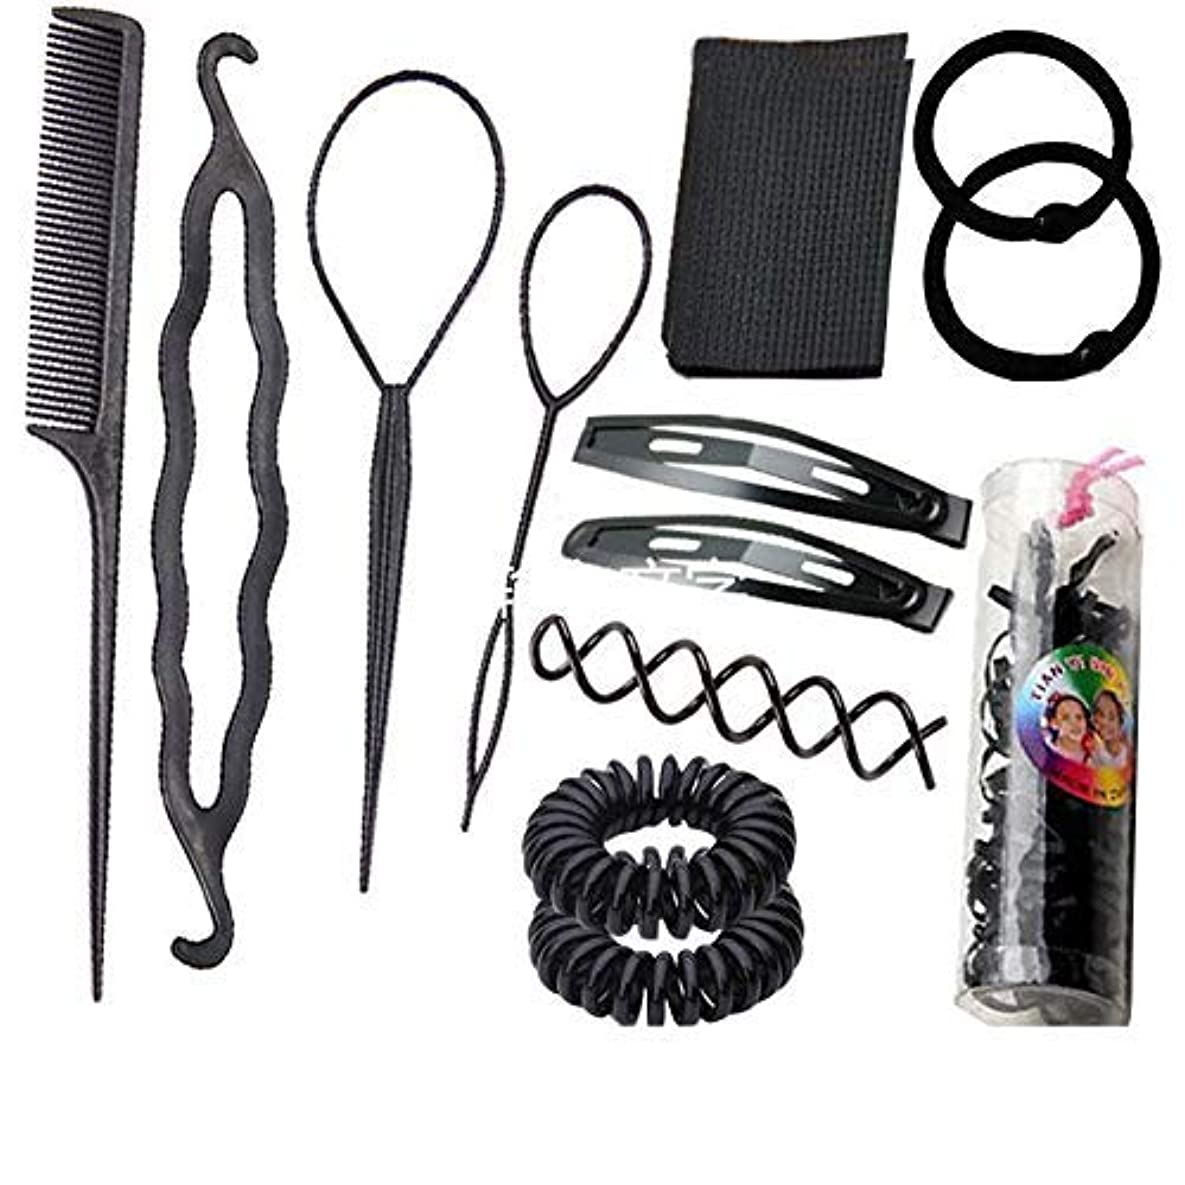 調和のとれたアニメーション書く1 Set Black 13 in 1 Hair Style Making Accessories Kits Hair Comb Metal Hairpins Hair Tools Hair Ropes Fringes Hair Pads Hair Pins Updo Hair Tools DIY Hairdressing for Home Use [並行輸入品]